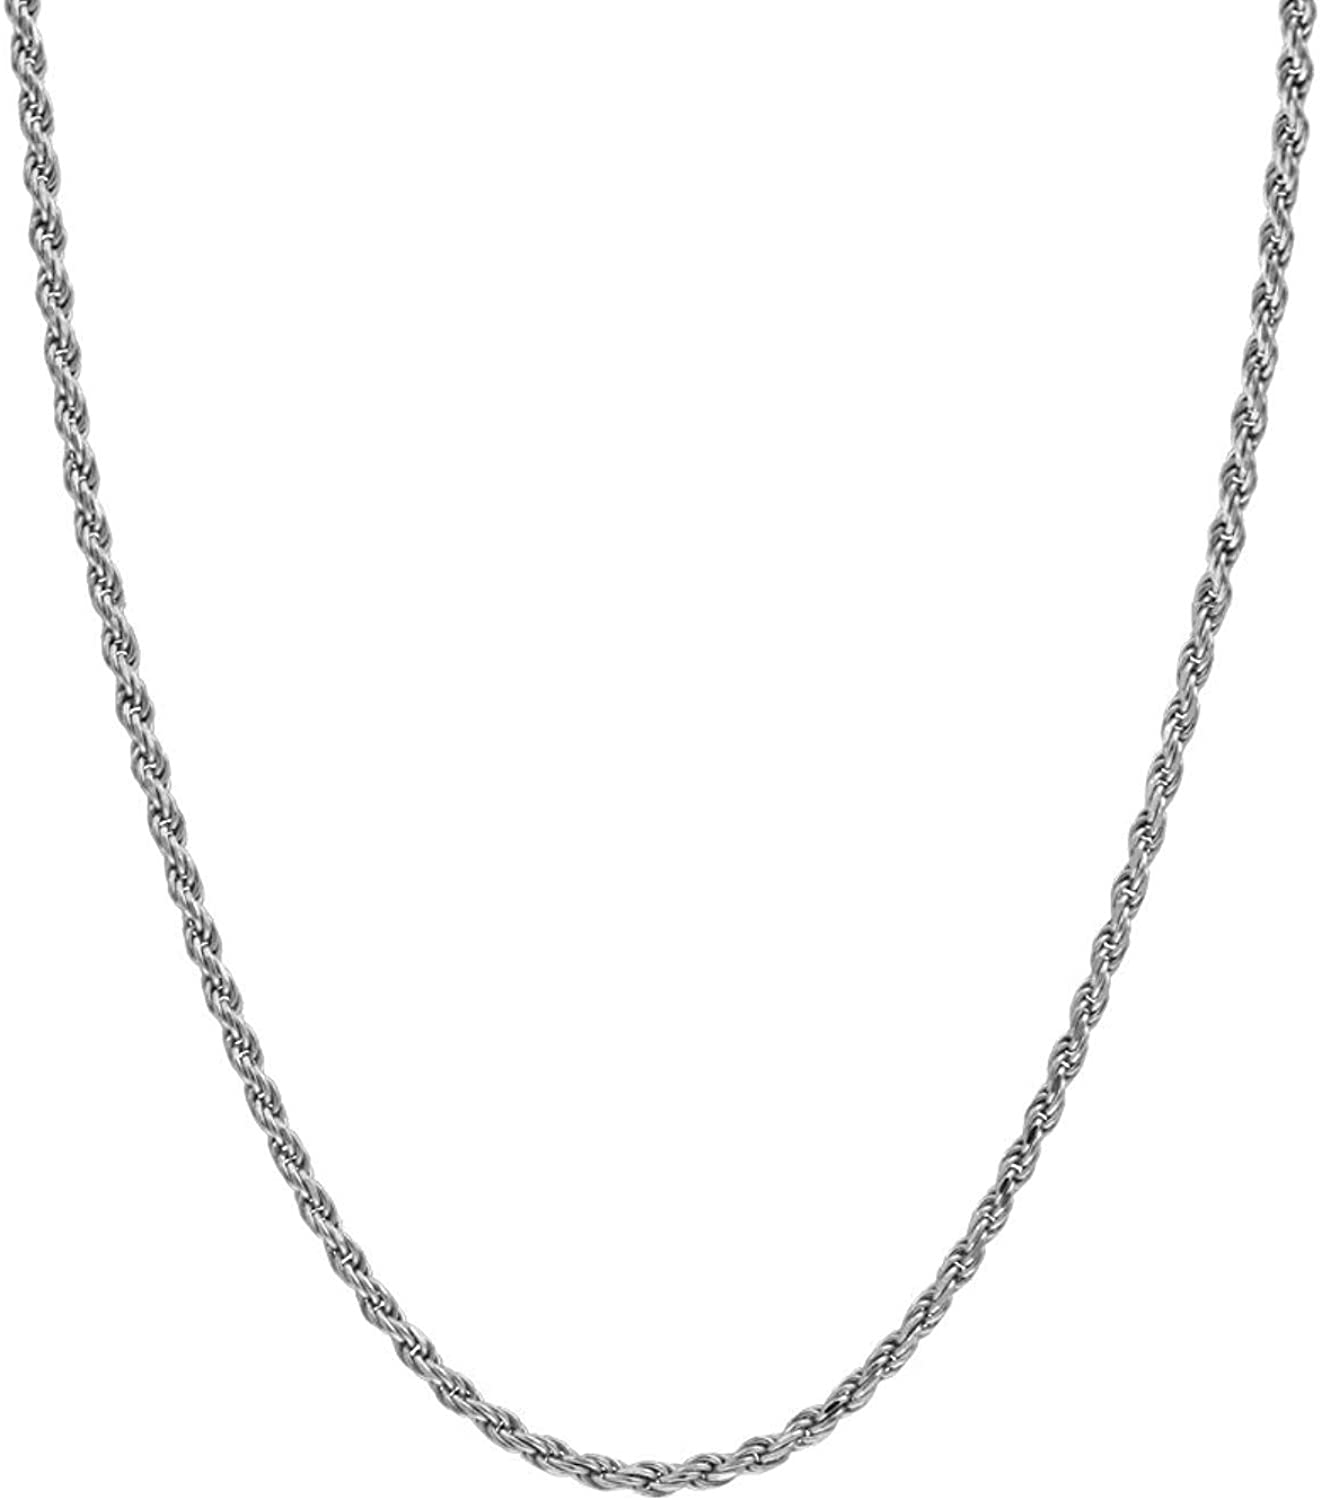 Hollywood Jewelry 2mm Diamond Cut Box Round Rope Chain Necklace22X More Real 14k Gold Plating Than Other Necklaces - with Free Lifetime Replacement Guarantee. USA Made